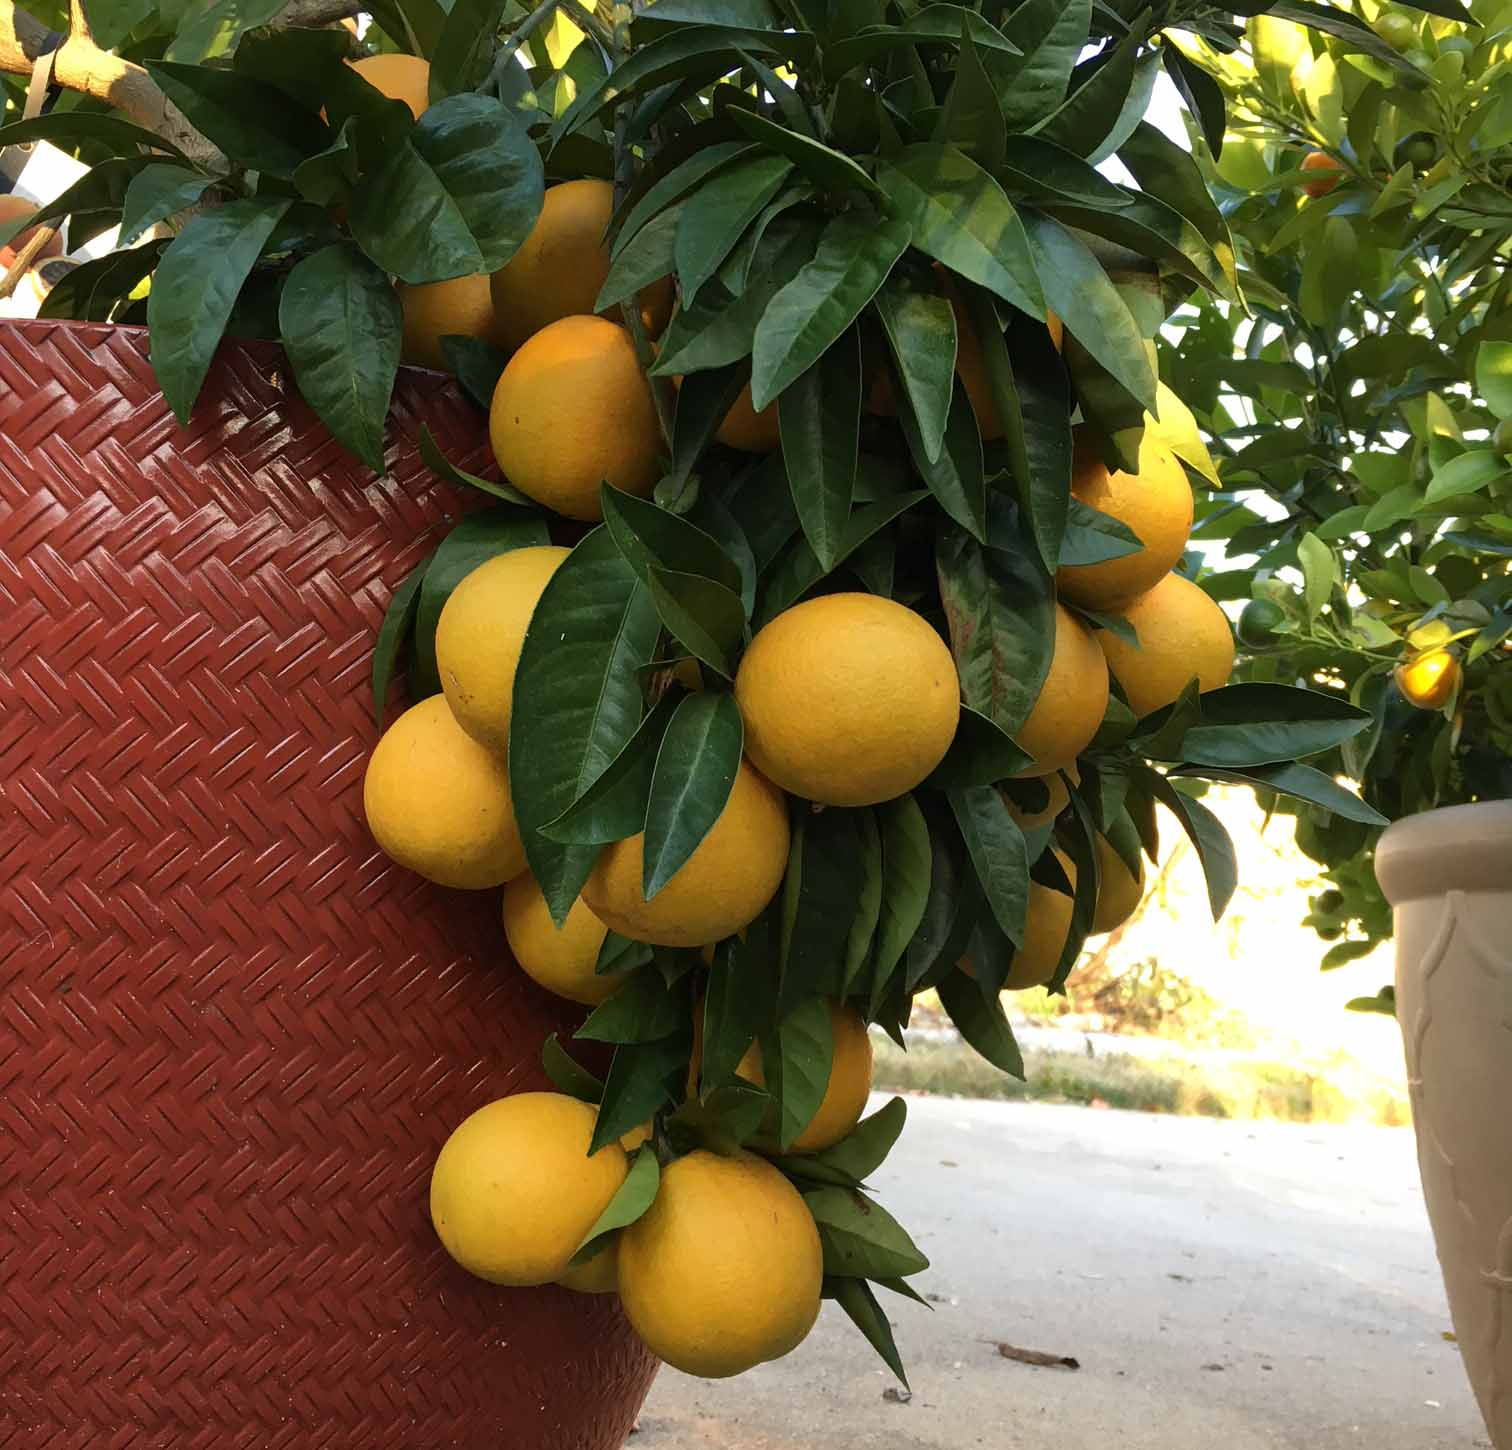 Moro blood oranges about 6 weeks from becoming ripe. If we didn't container garden, we wouldn't get organic, tree-ripened citrus throughout the year. Container gardening questions answered.